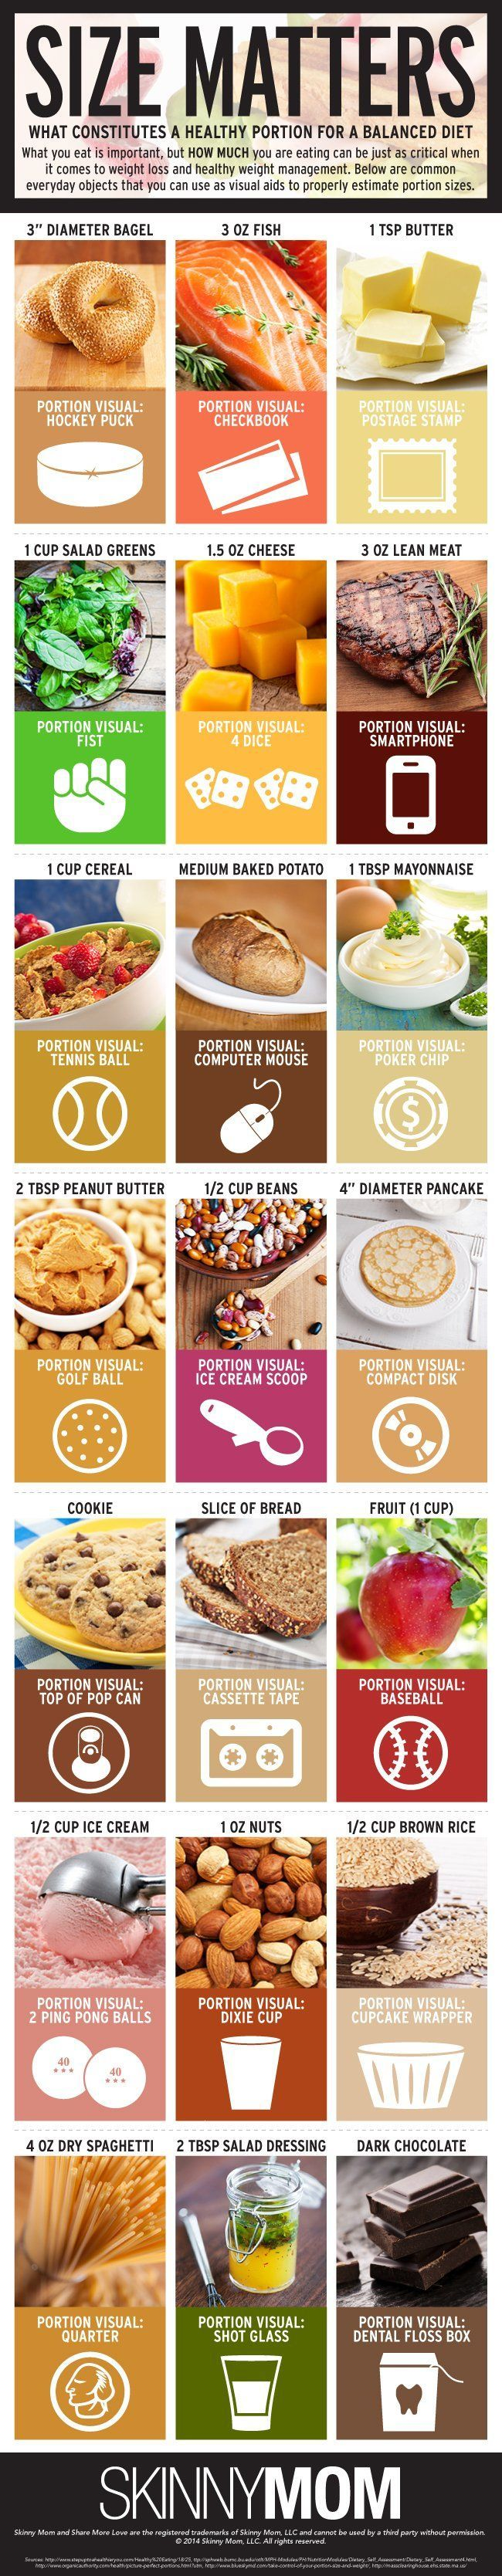 Food Proportions: good for you or not, if you're eating too much of something you could be hurting your diet. #eatclean